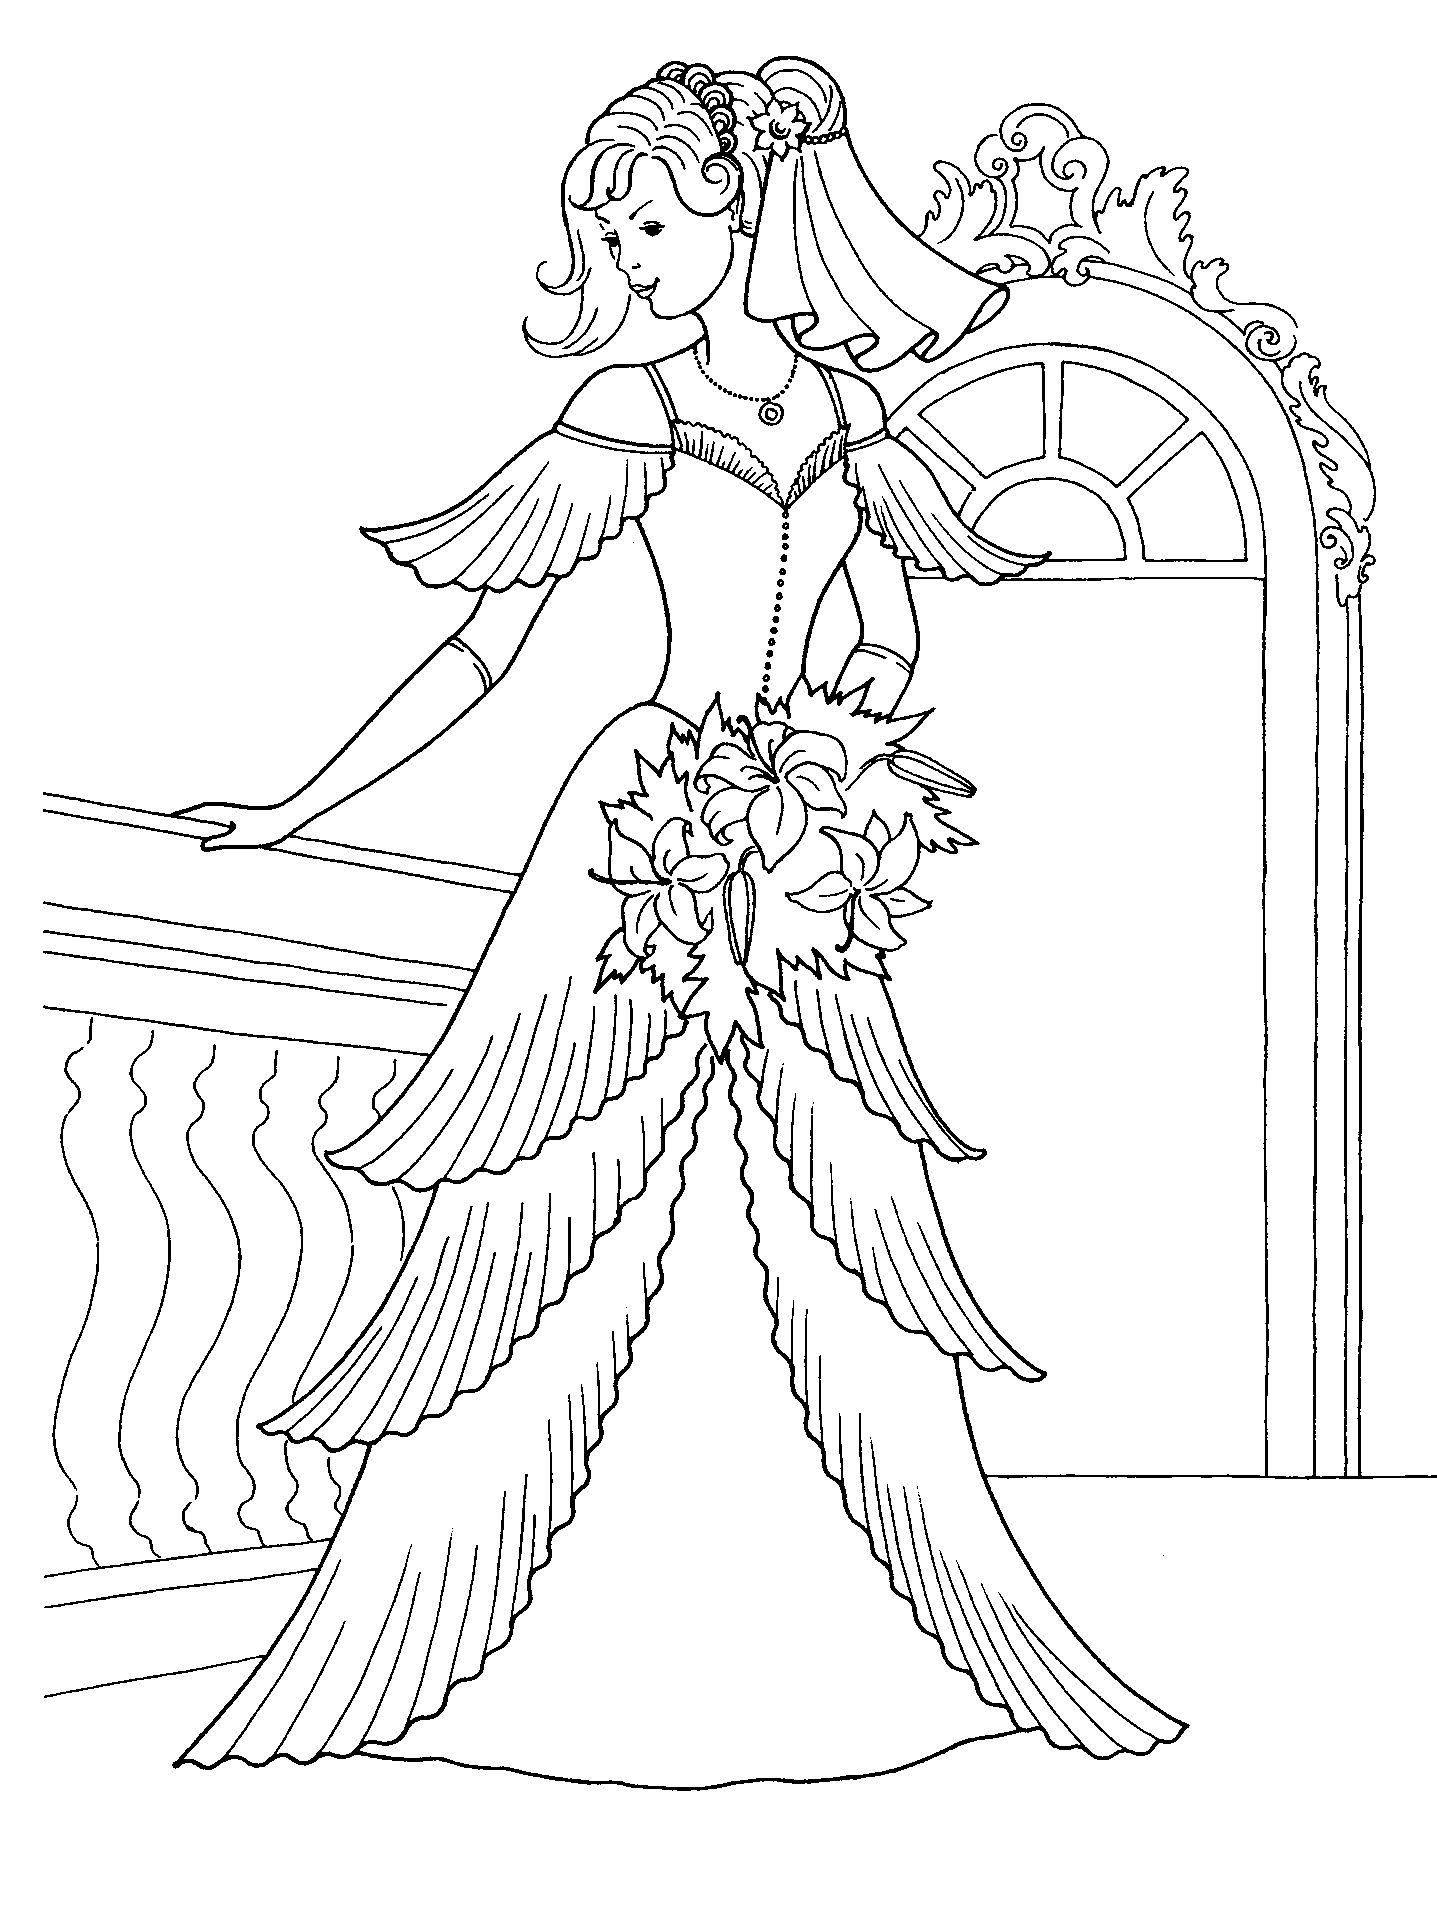 Princess Pictures Coloring Pages Coloring Pages Coloring Pages Of Princess Dresses Free Coloring Sheets